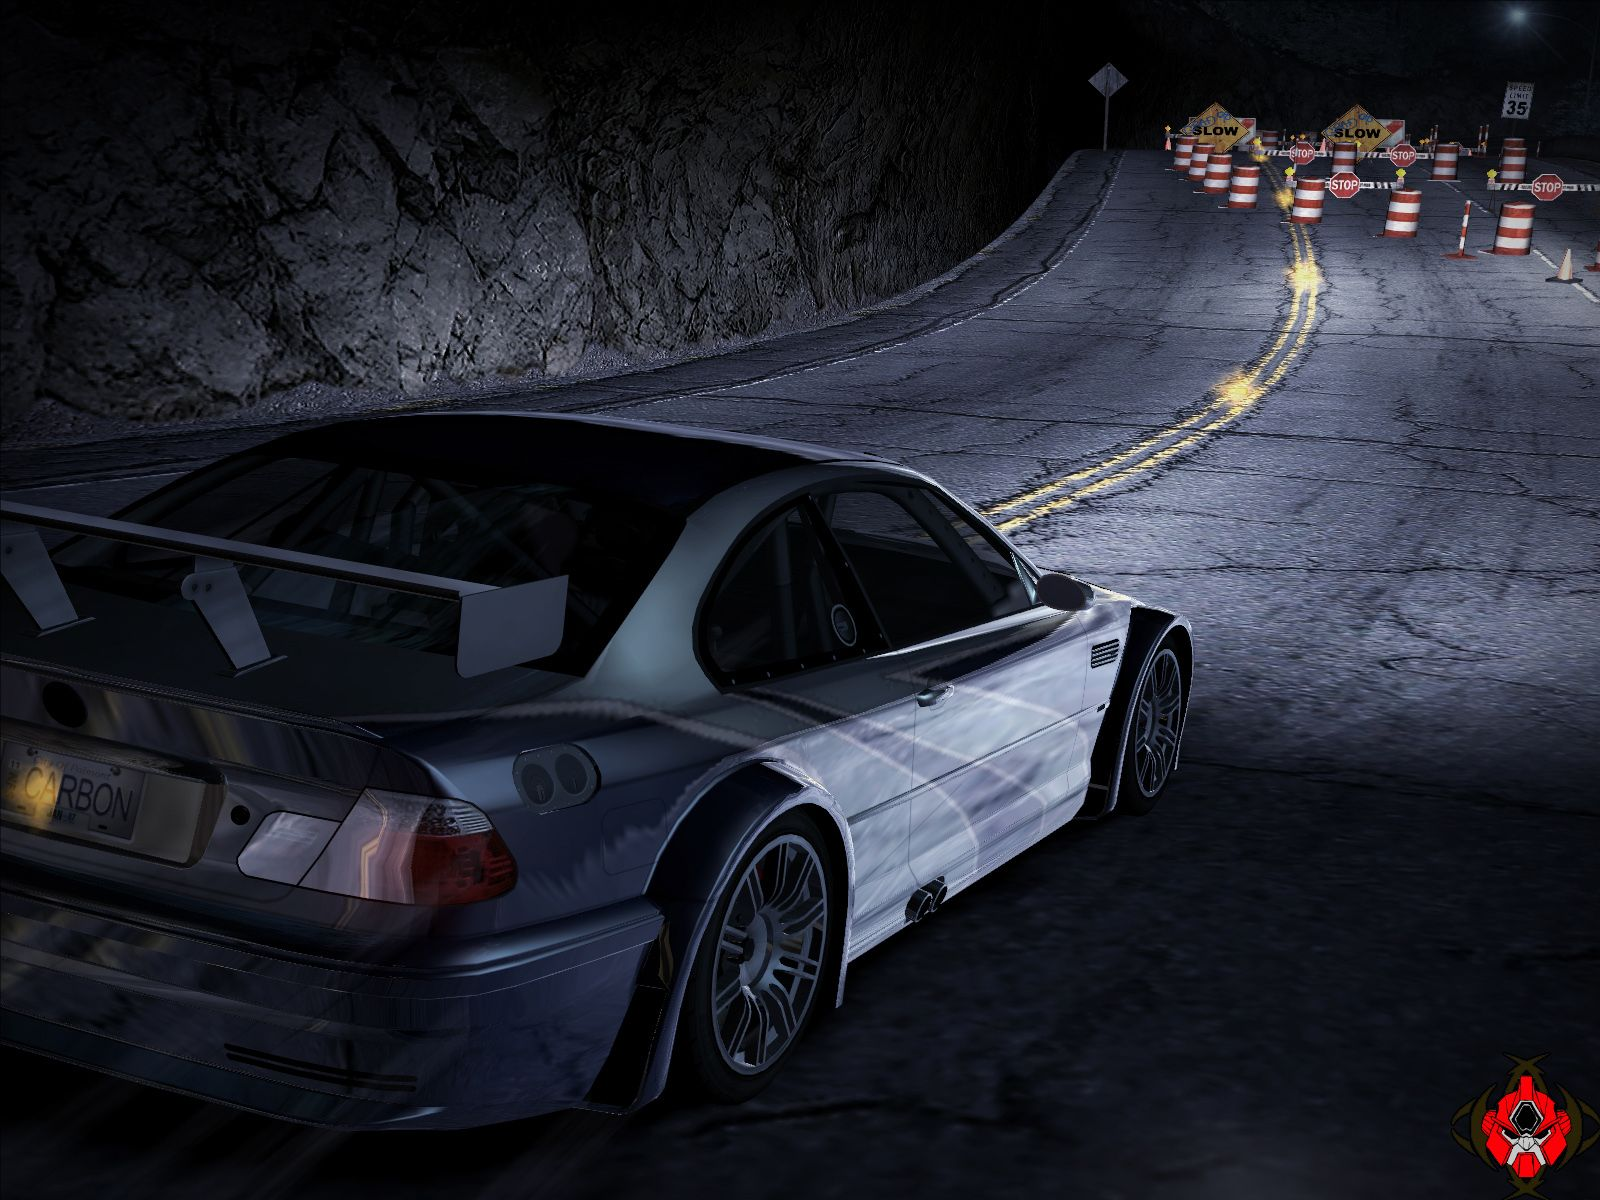 bmw m3 gtr car wallpapers free download 1600 1200 need for speed bmw m3 gtr. Black Bedroom Furniture Sets. Home Design Ideas